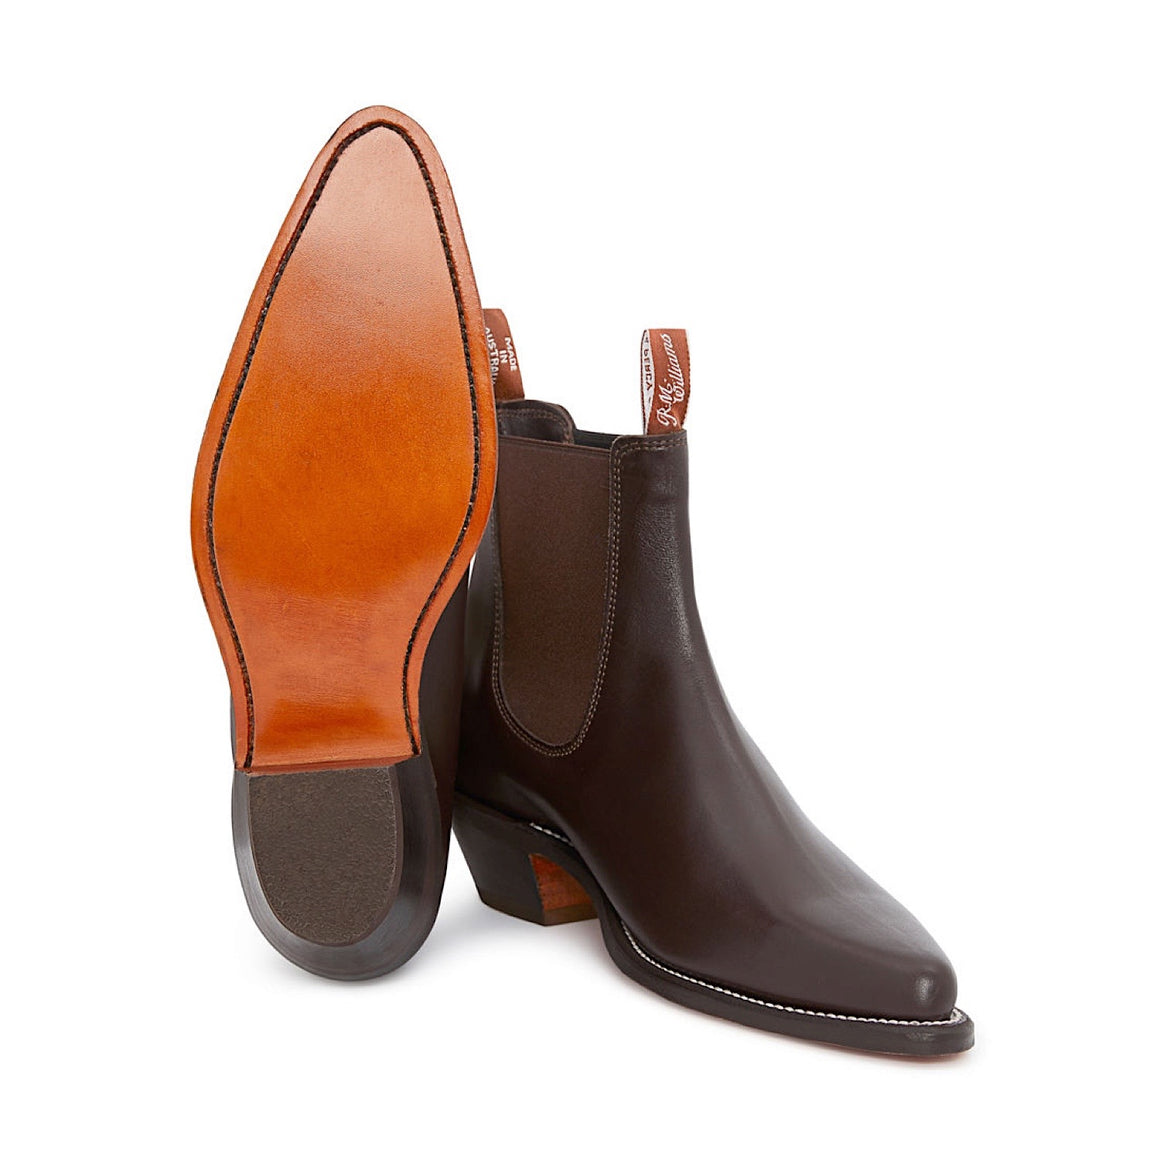 R.M.Williams Millicent Boots Chestnut